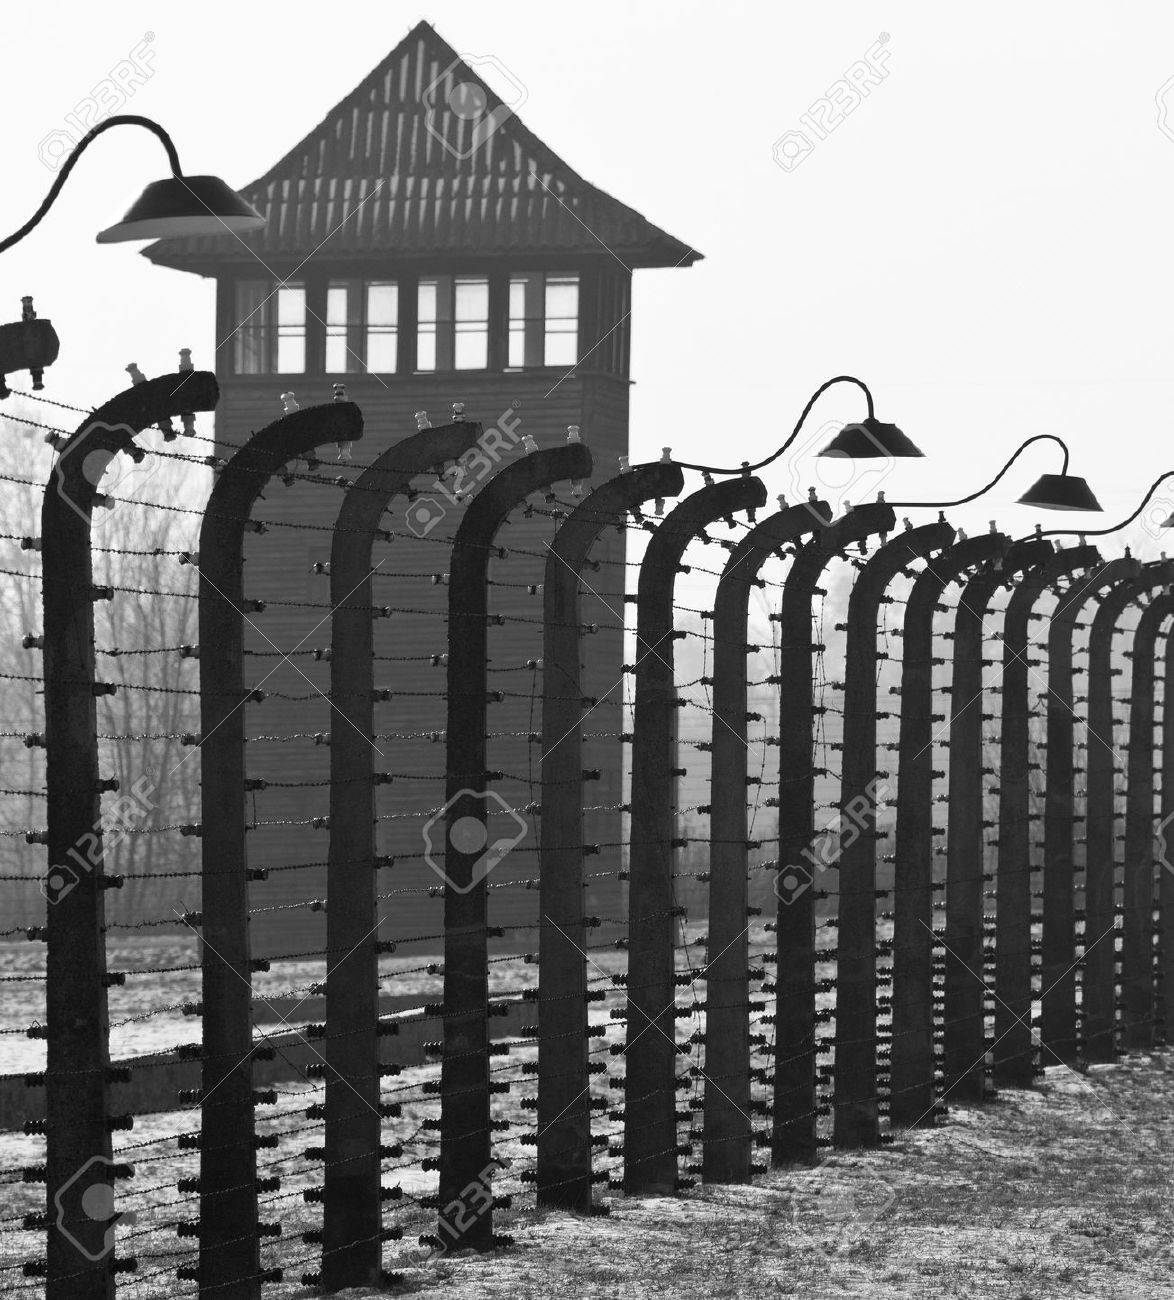 Auschwitz II-Birkenau, the extermination camp, where up to three million people were murdered by the Nazis - 2 5 million gassed, and 500,000 from disease and starvation - 20578227